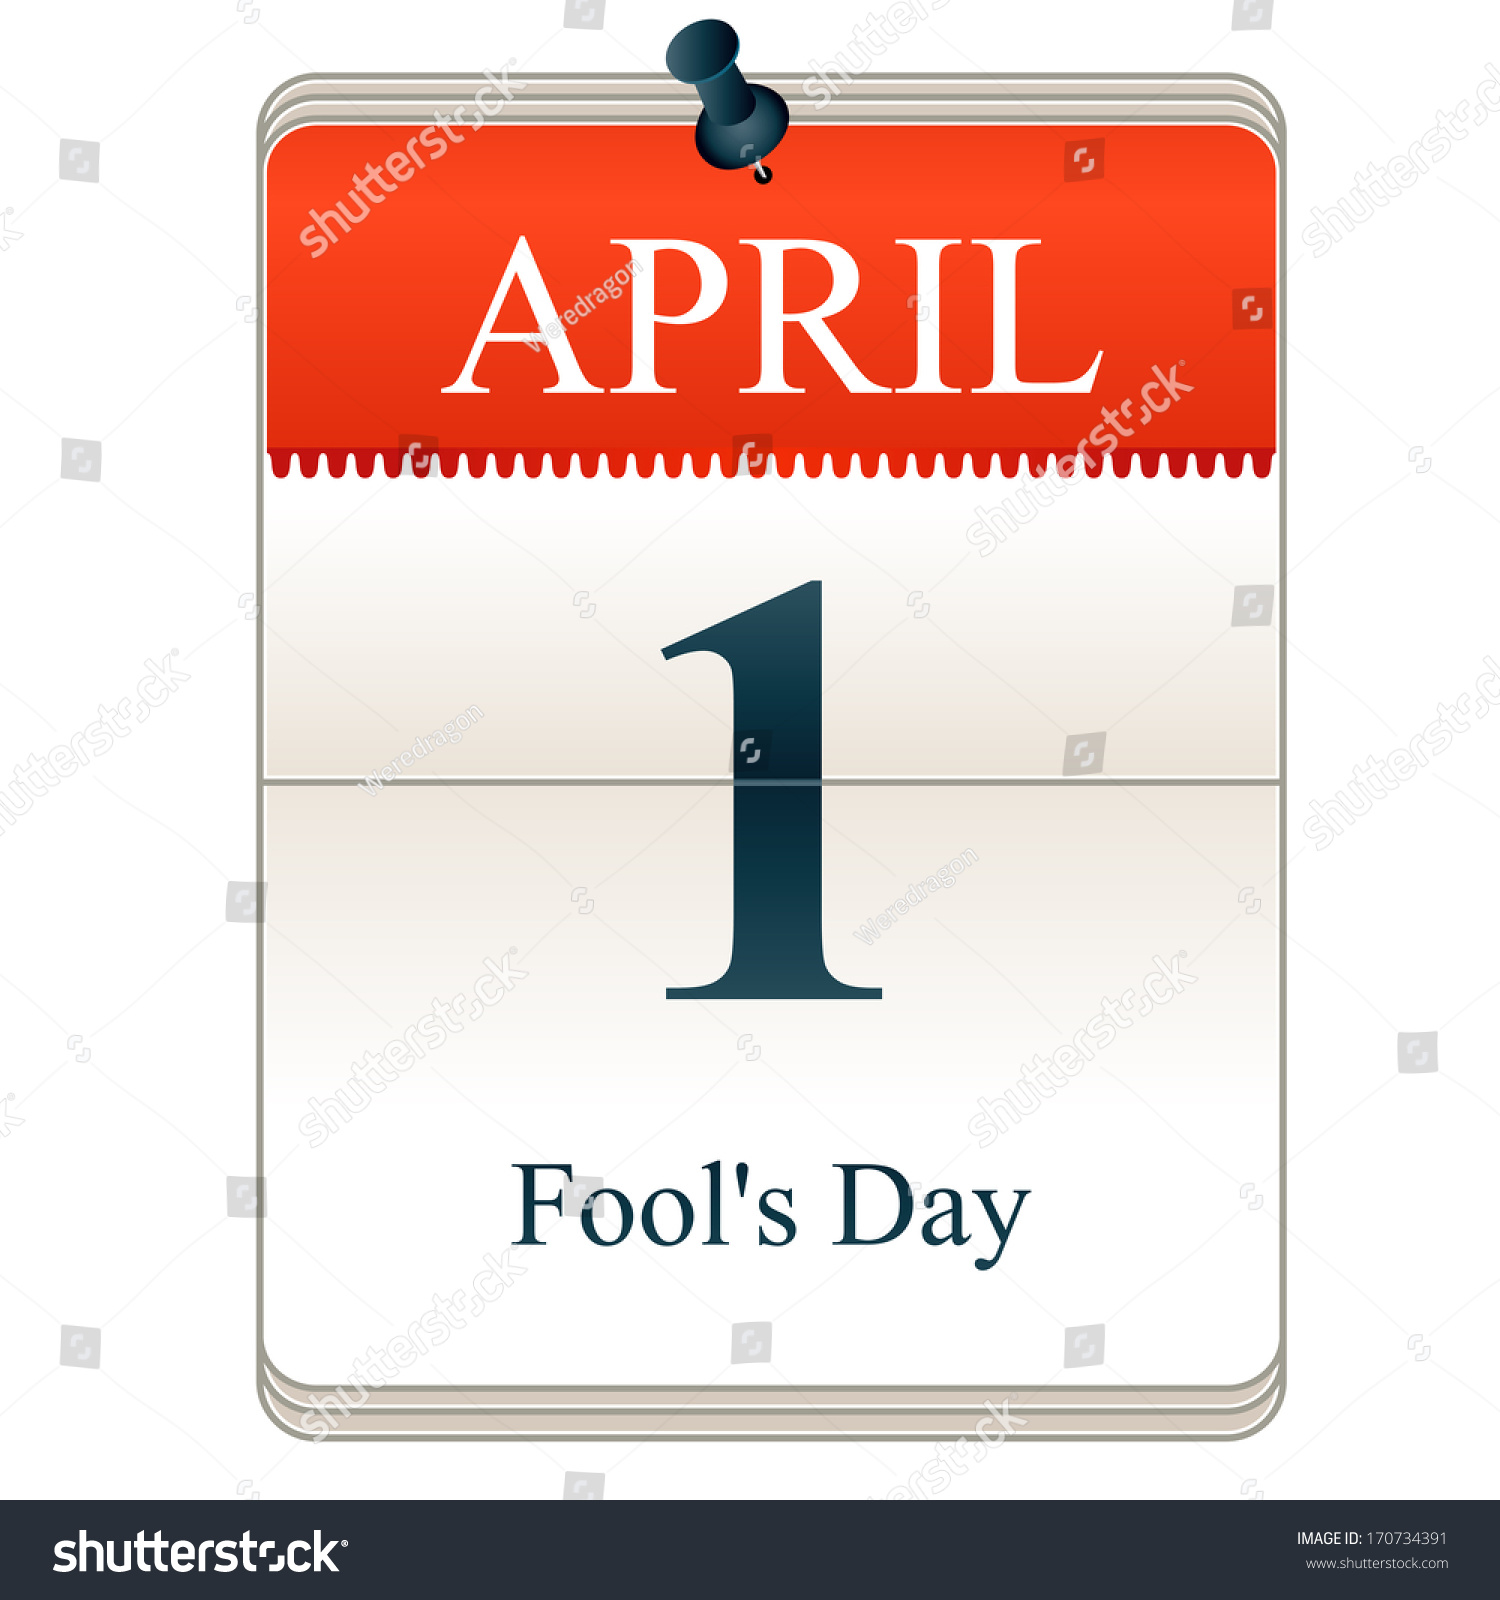 Calendar April Fools : Vector calendar fools day st april stock